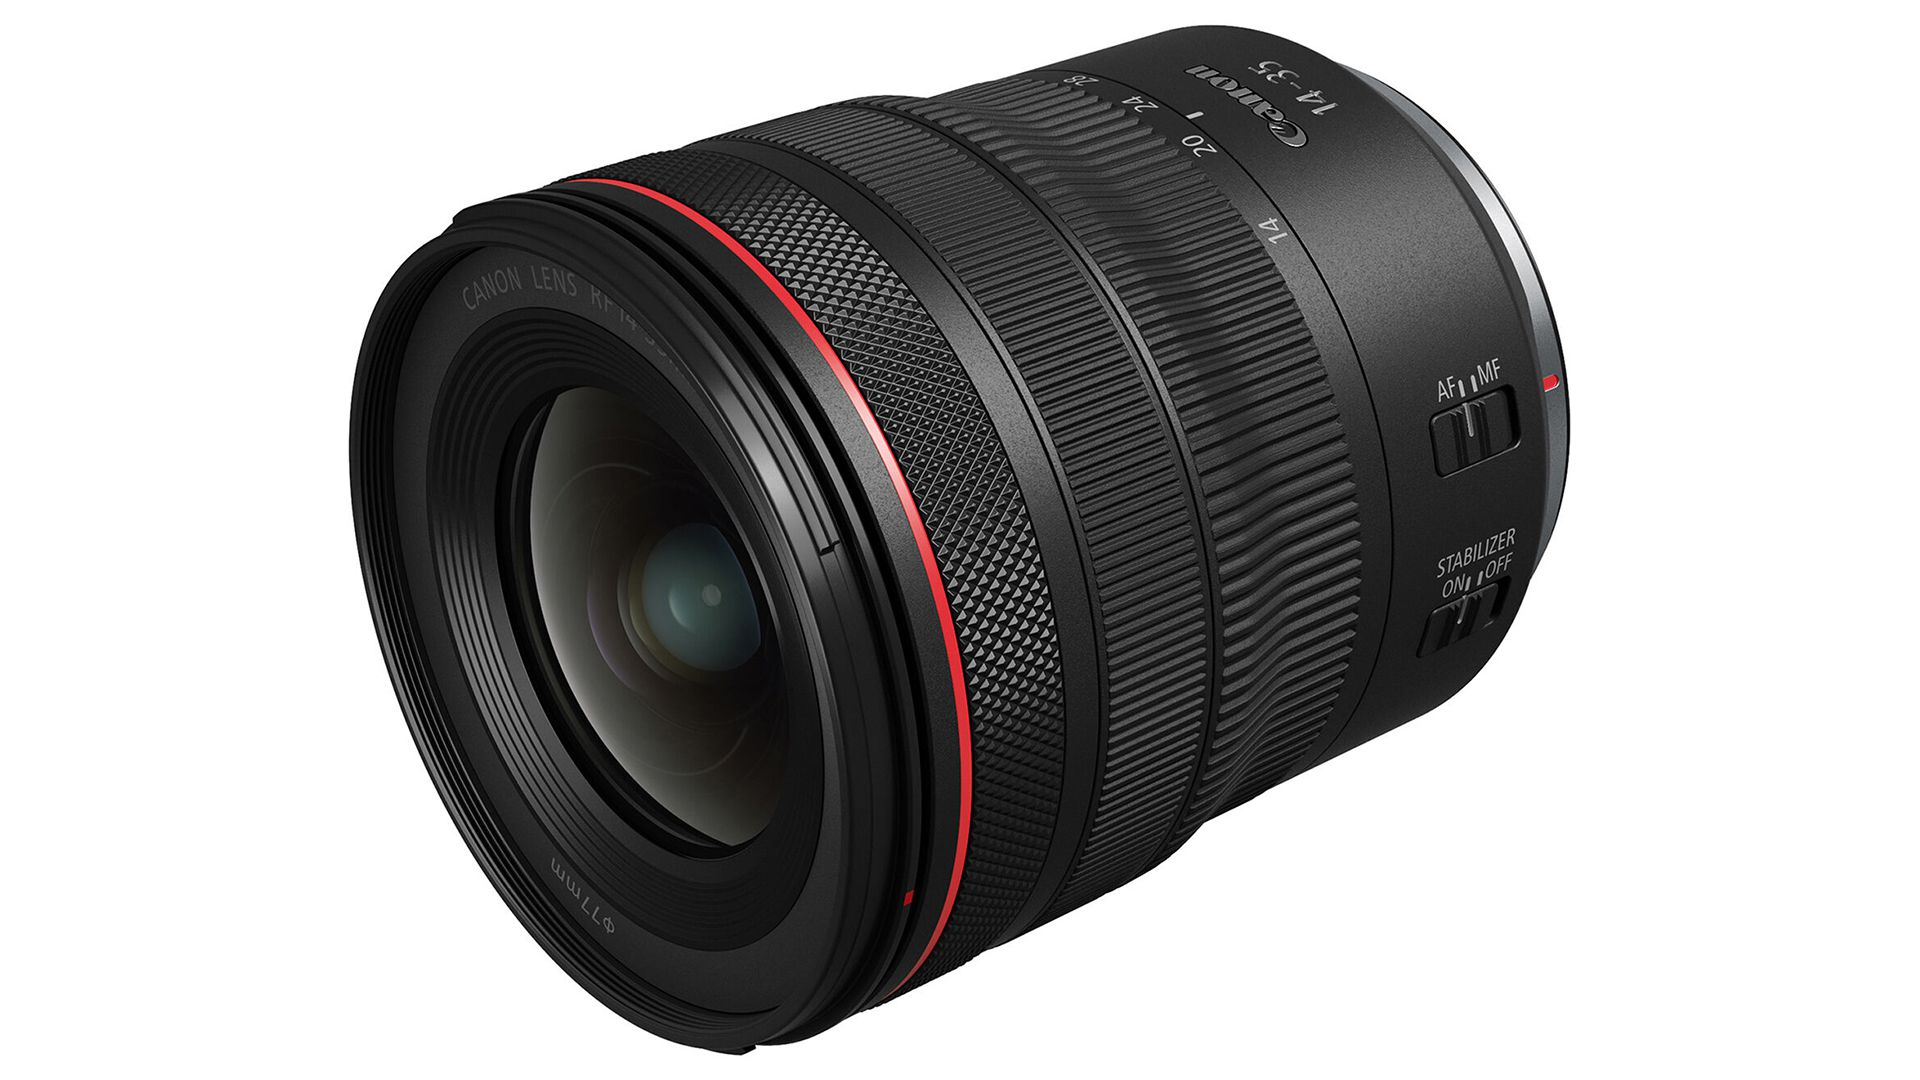 Canon RF 14-35mm f/4L IS USM